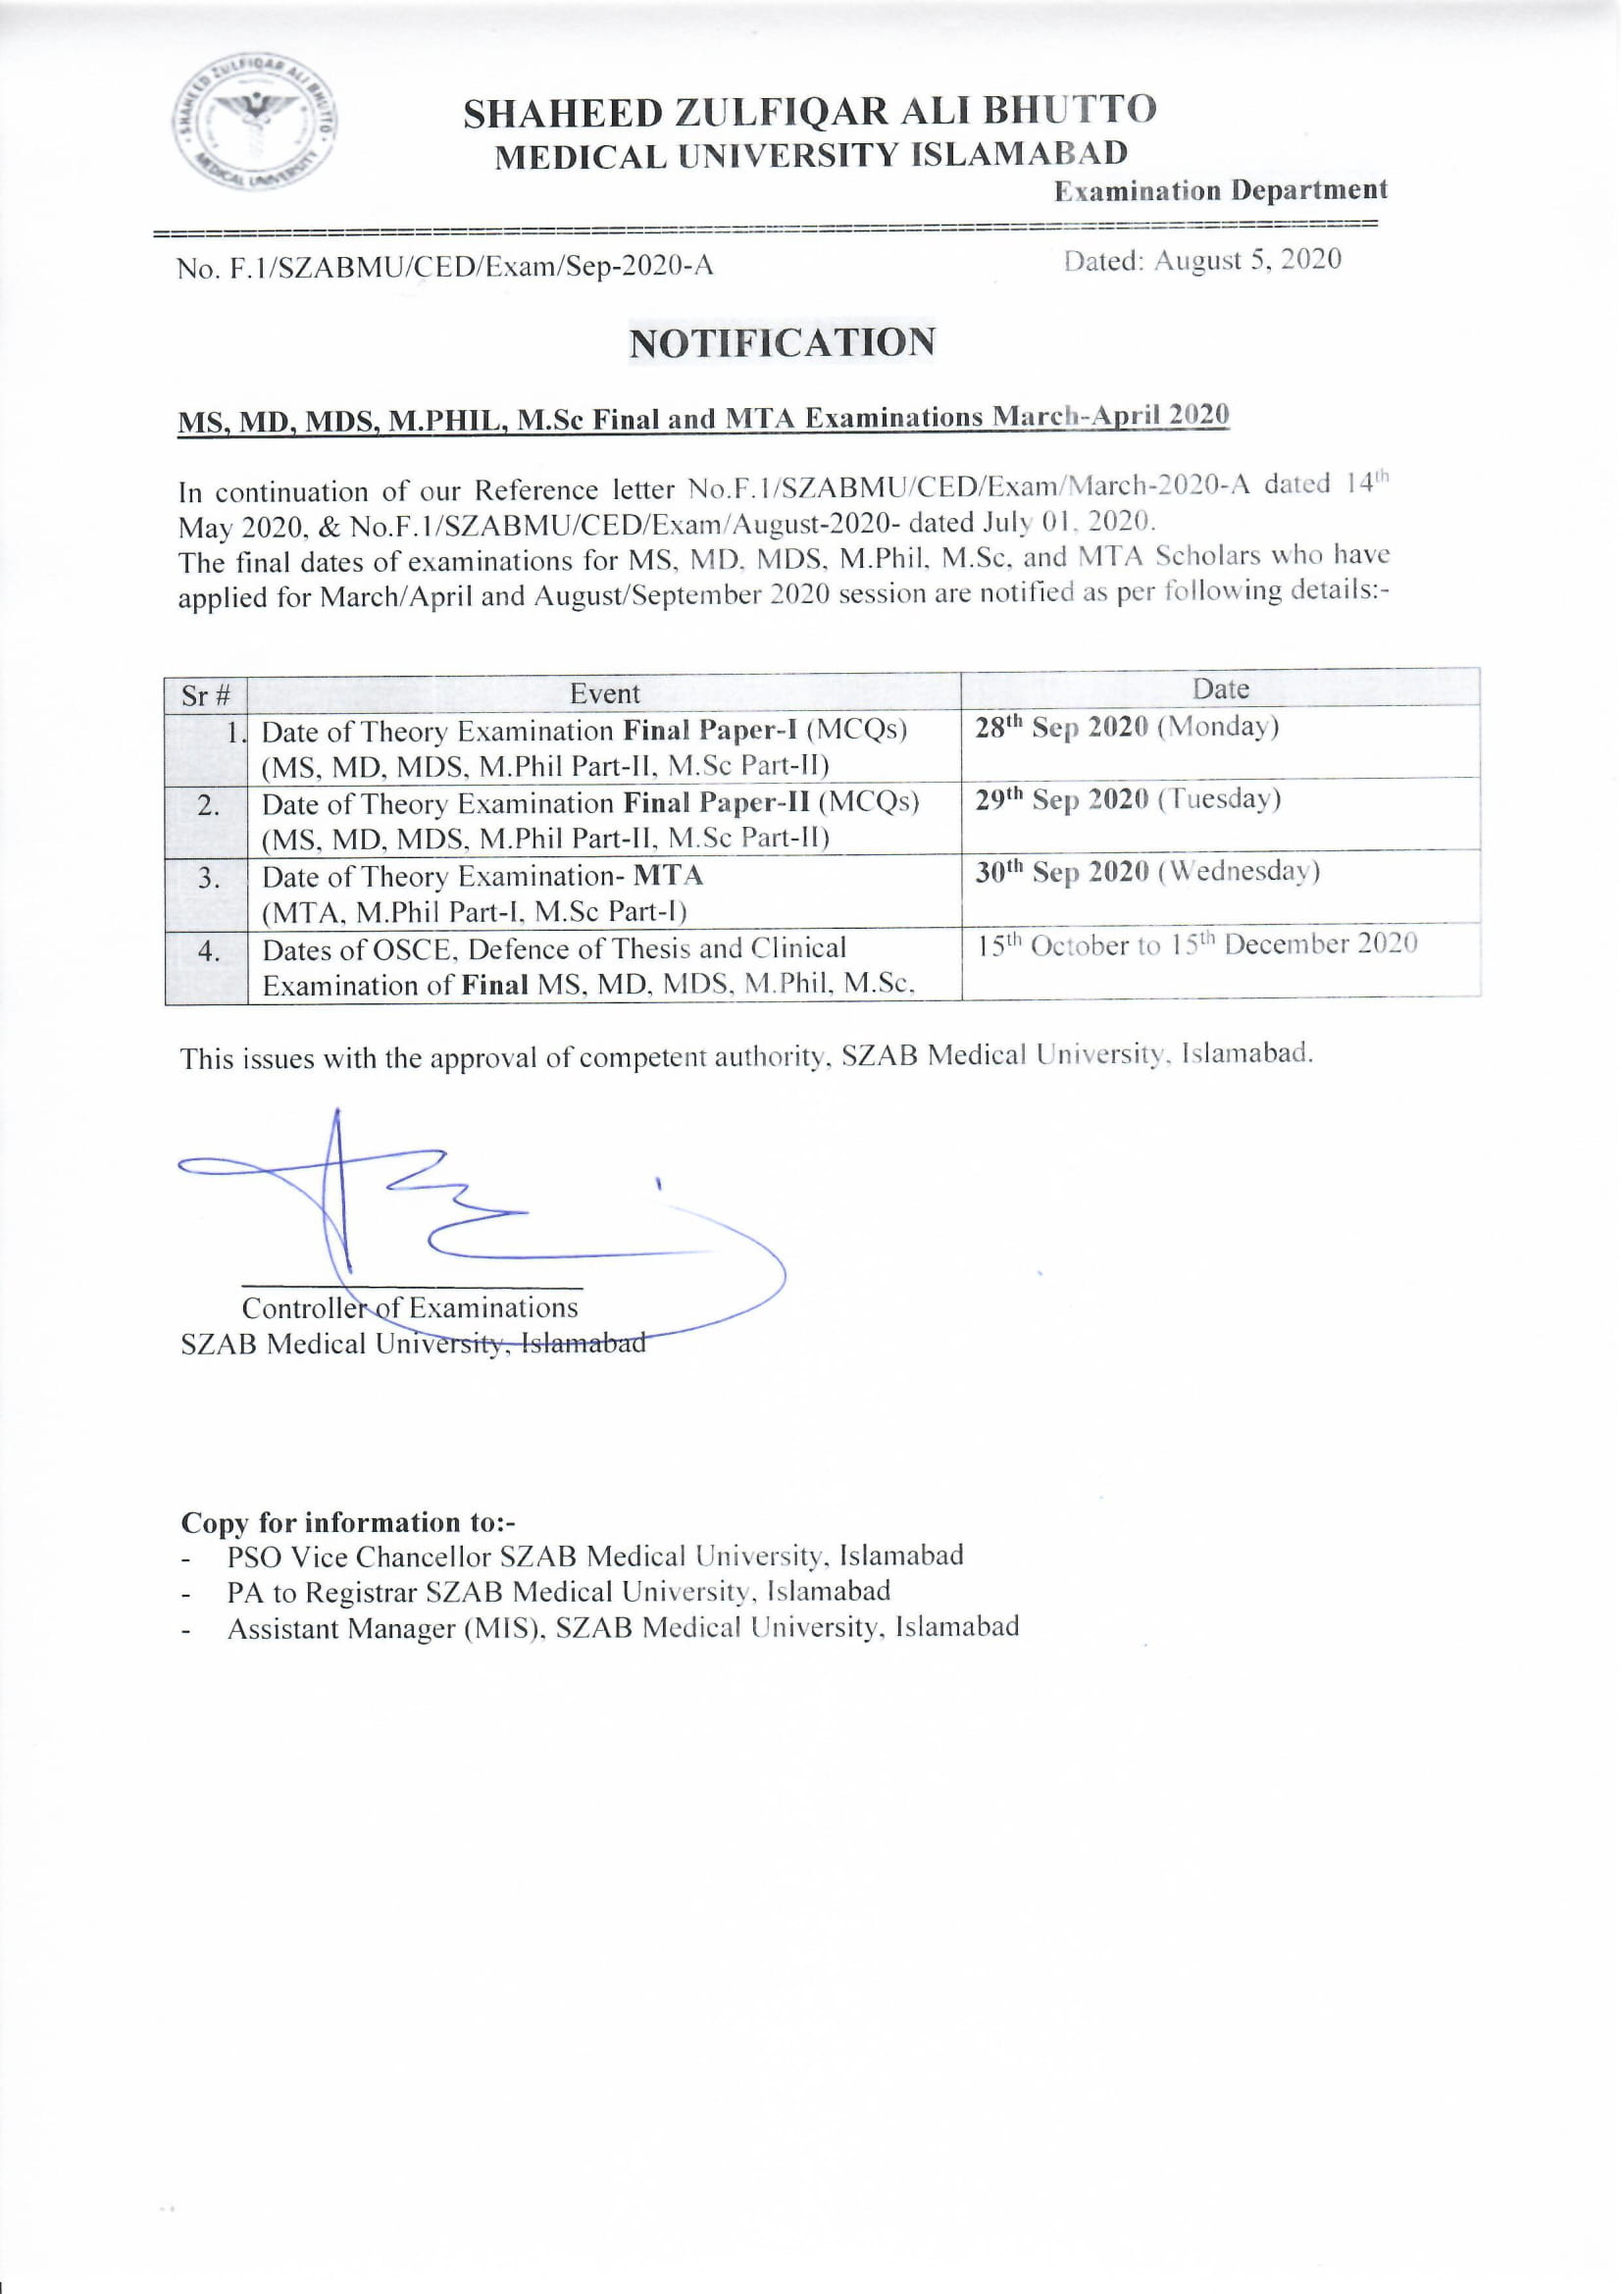 Revised Schedule of MS MD MDS M.phil M.Sc MTA Theory Exam Sep/Oct 2020